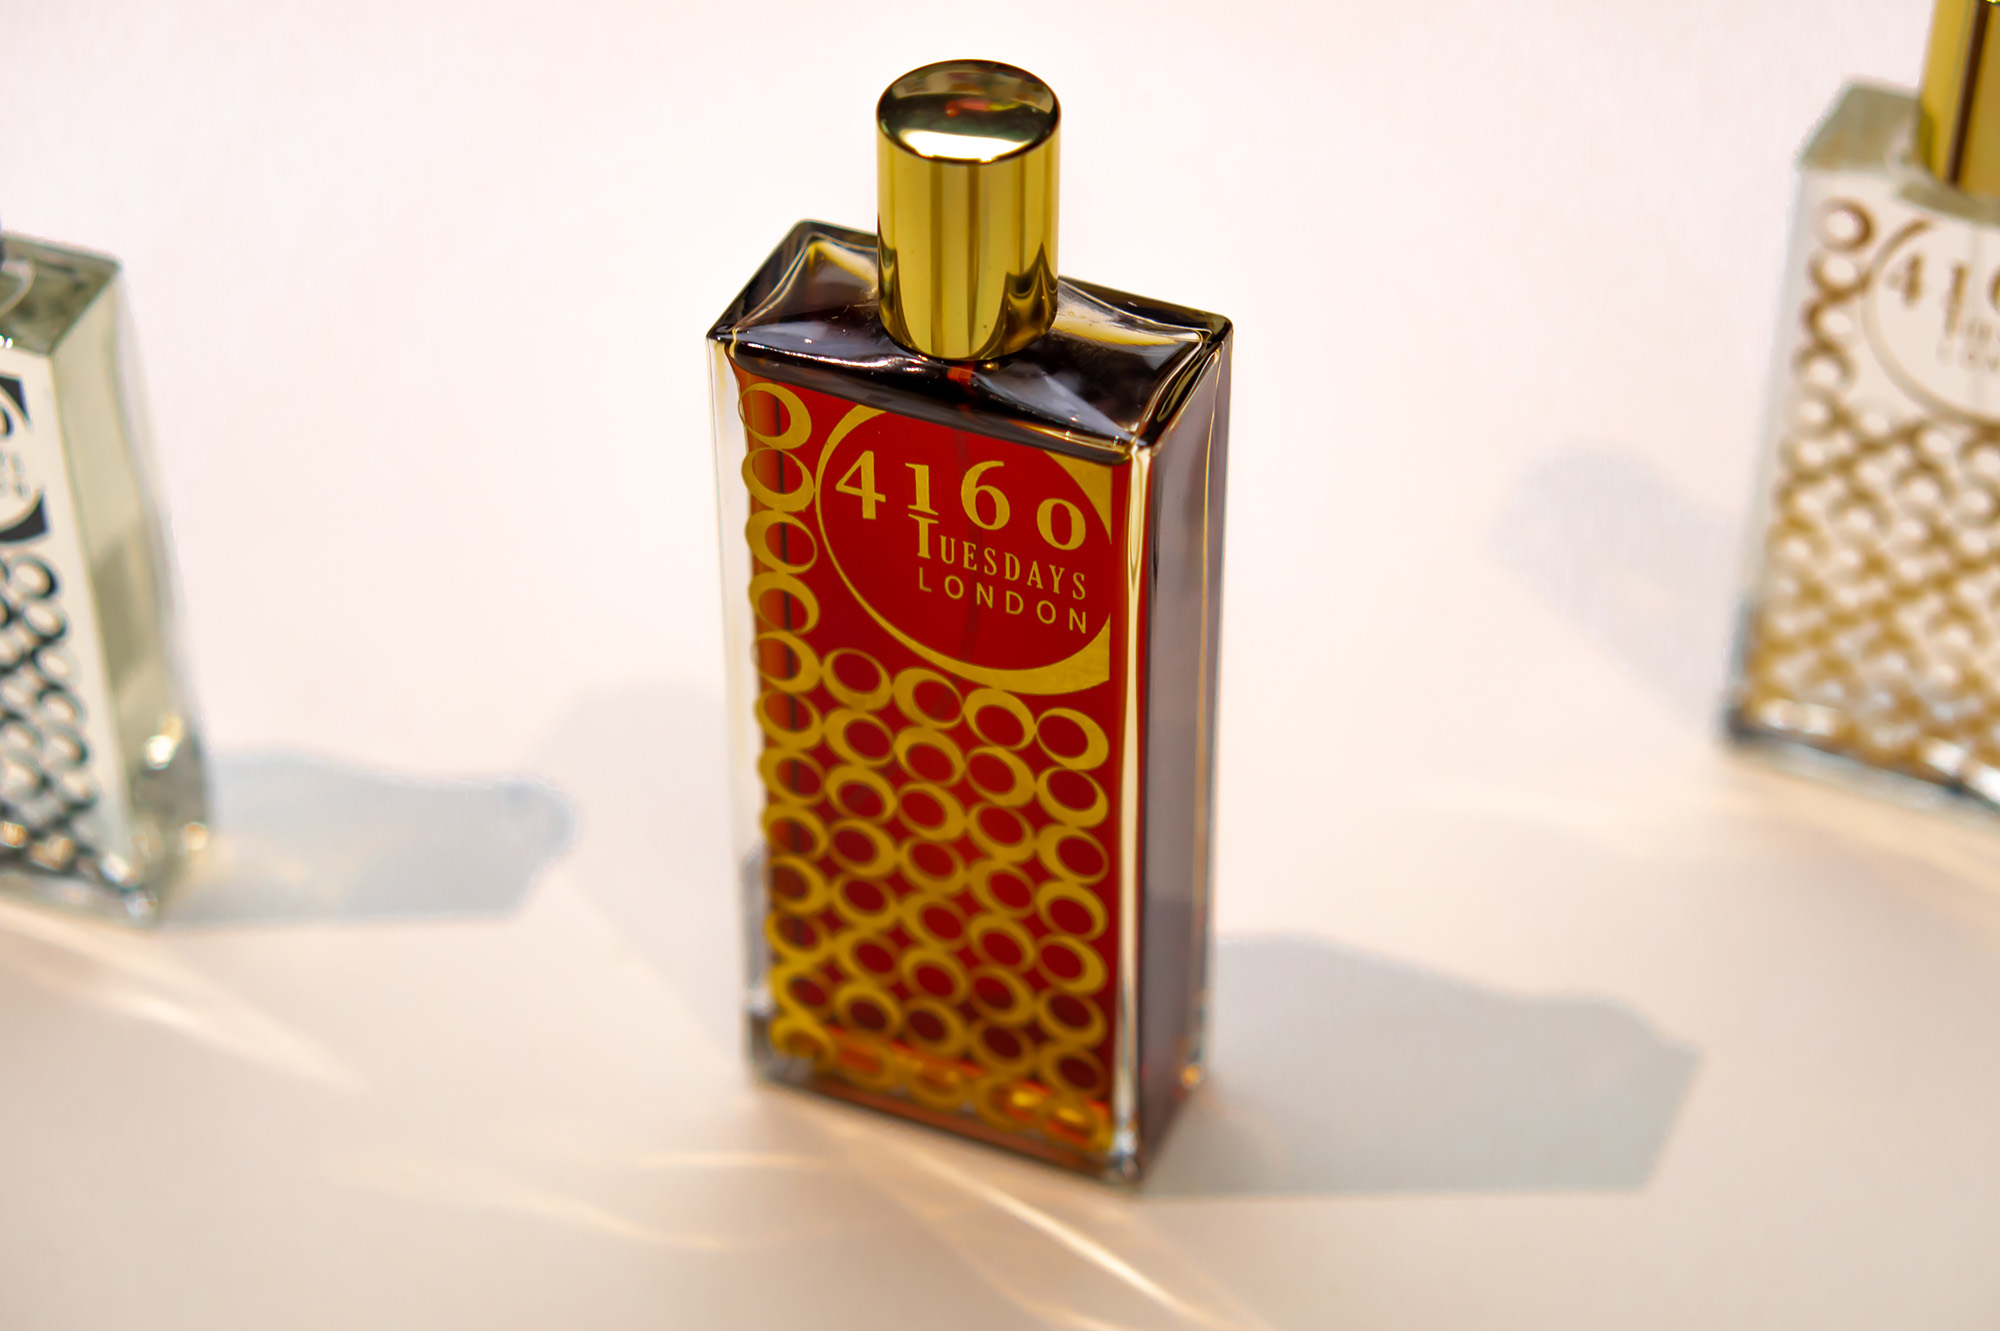 4160 Tuesdays London perfume niche parfüm нишевая парфюмерия